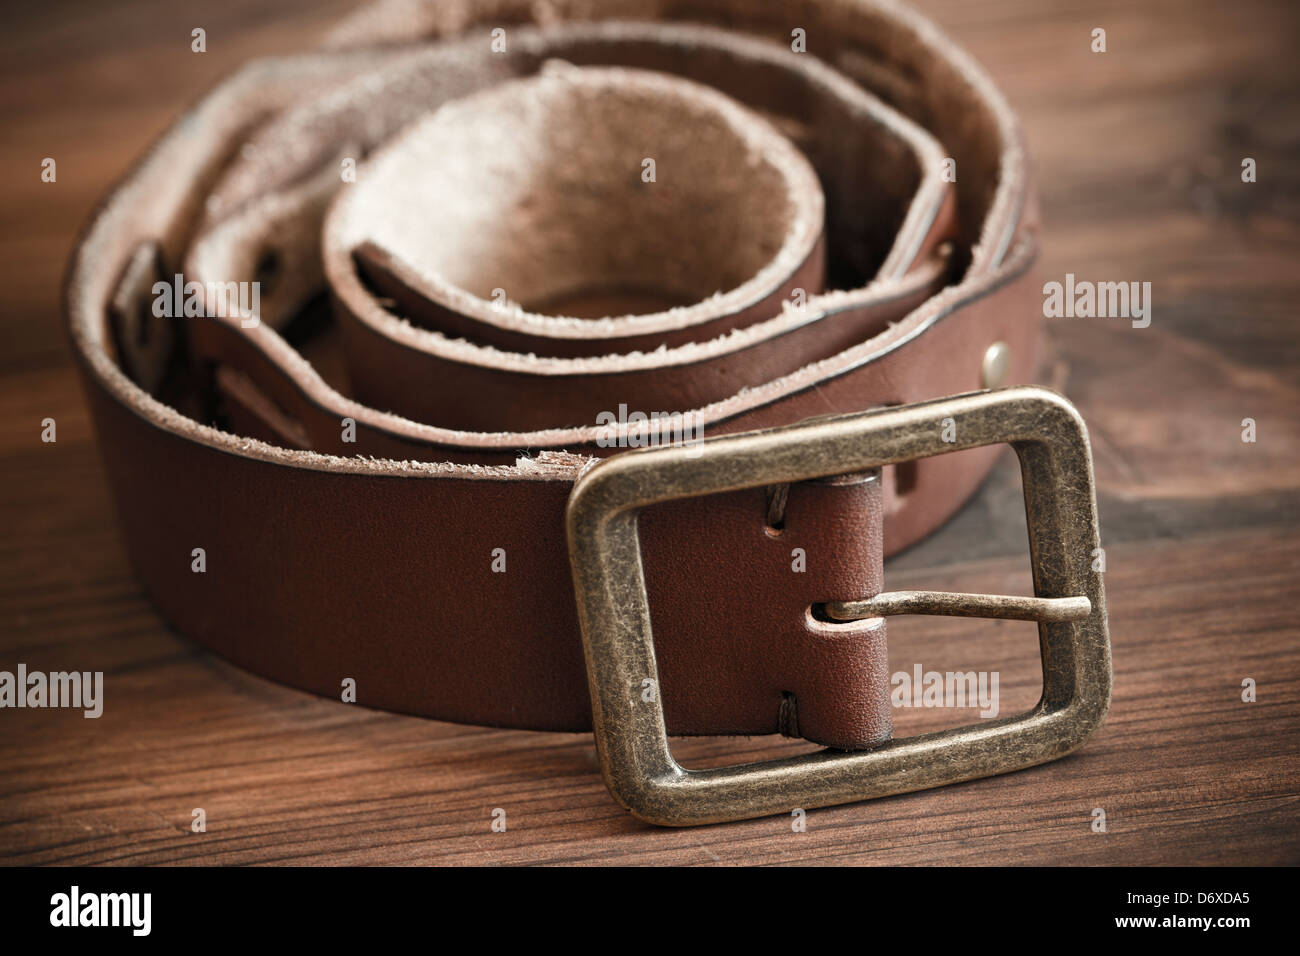 leather belt in close-up - Stock Image